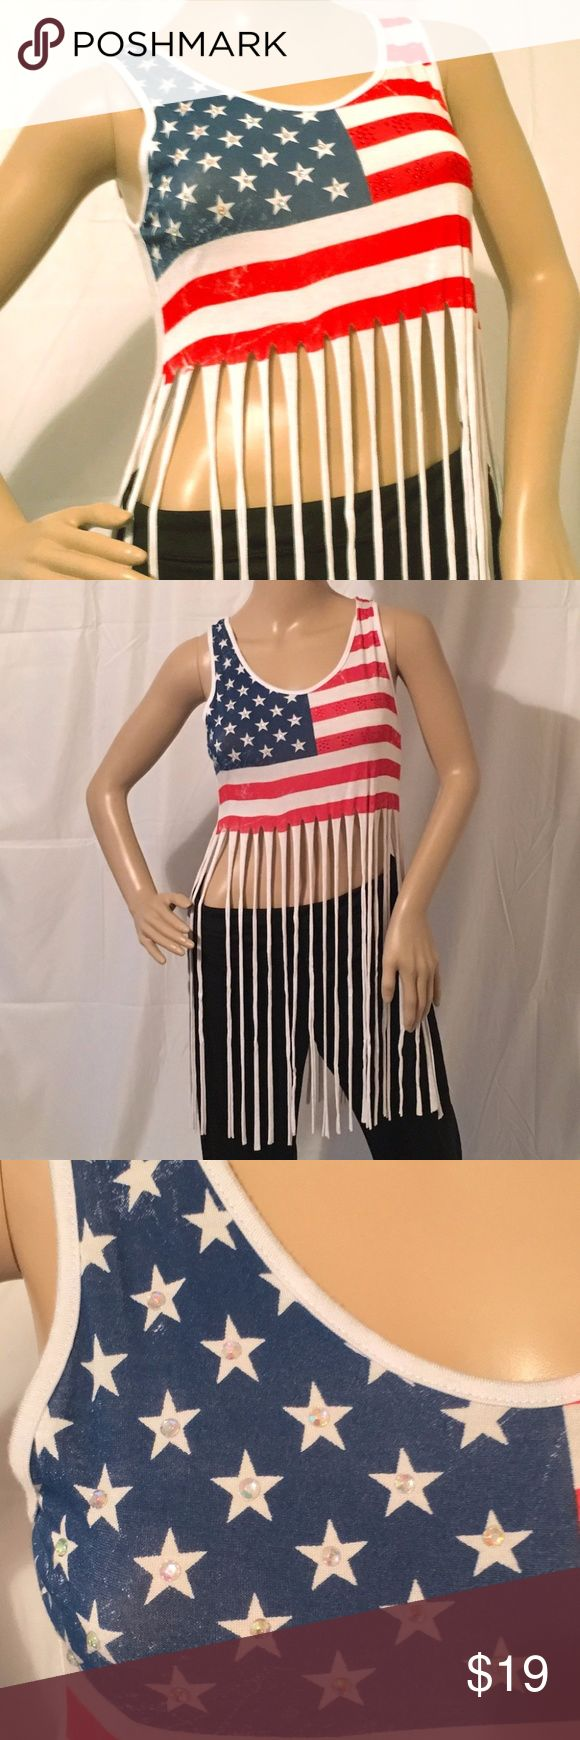 Flag Fringed Patriotic Tank Top »  Cute & Sexy Way to Express Patriotism at Your Next Holiday BBQ »  95% Rayon  |  5% Spandex »  Stone-Studded Stars & Stripes »  Condition:  NWT Bling Bling Tops Tank Tops